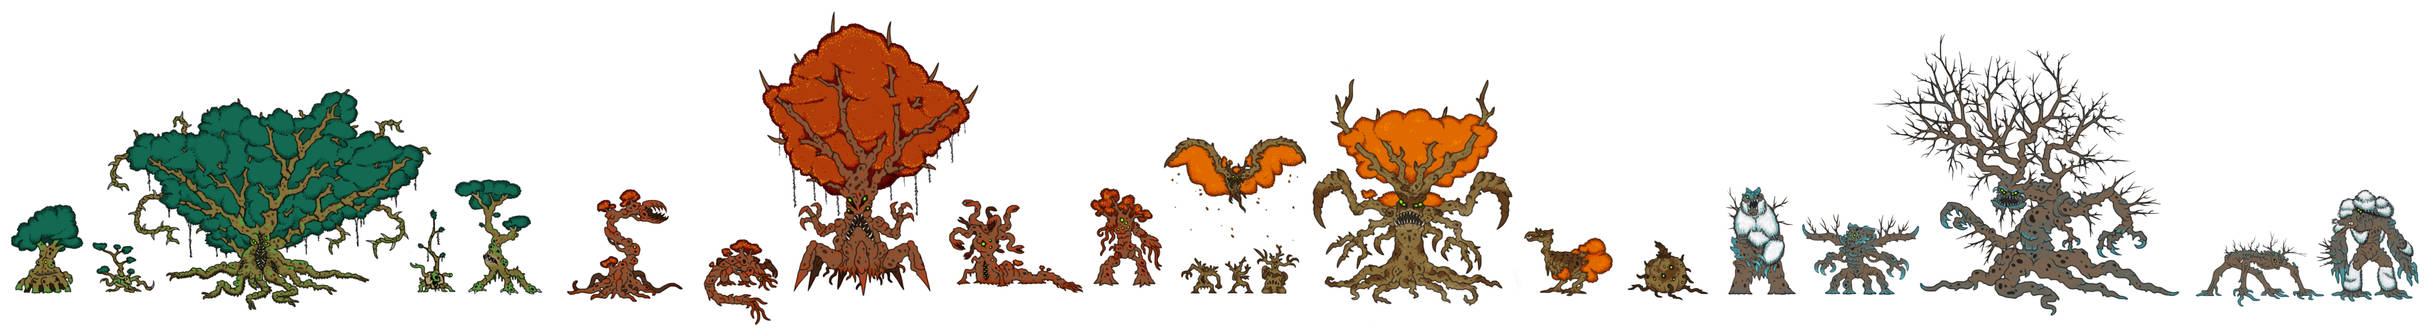 The Uddobero Horde by DinoHunter2